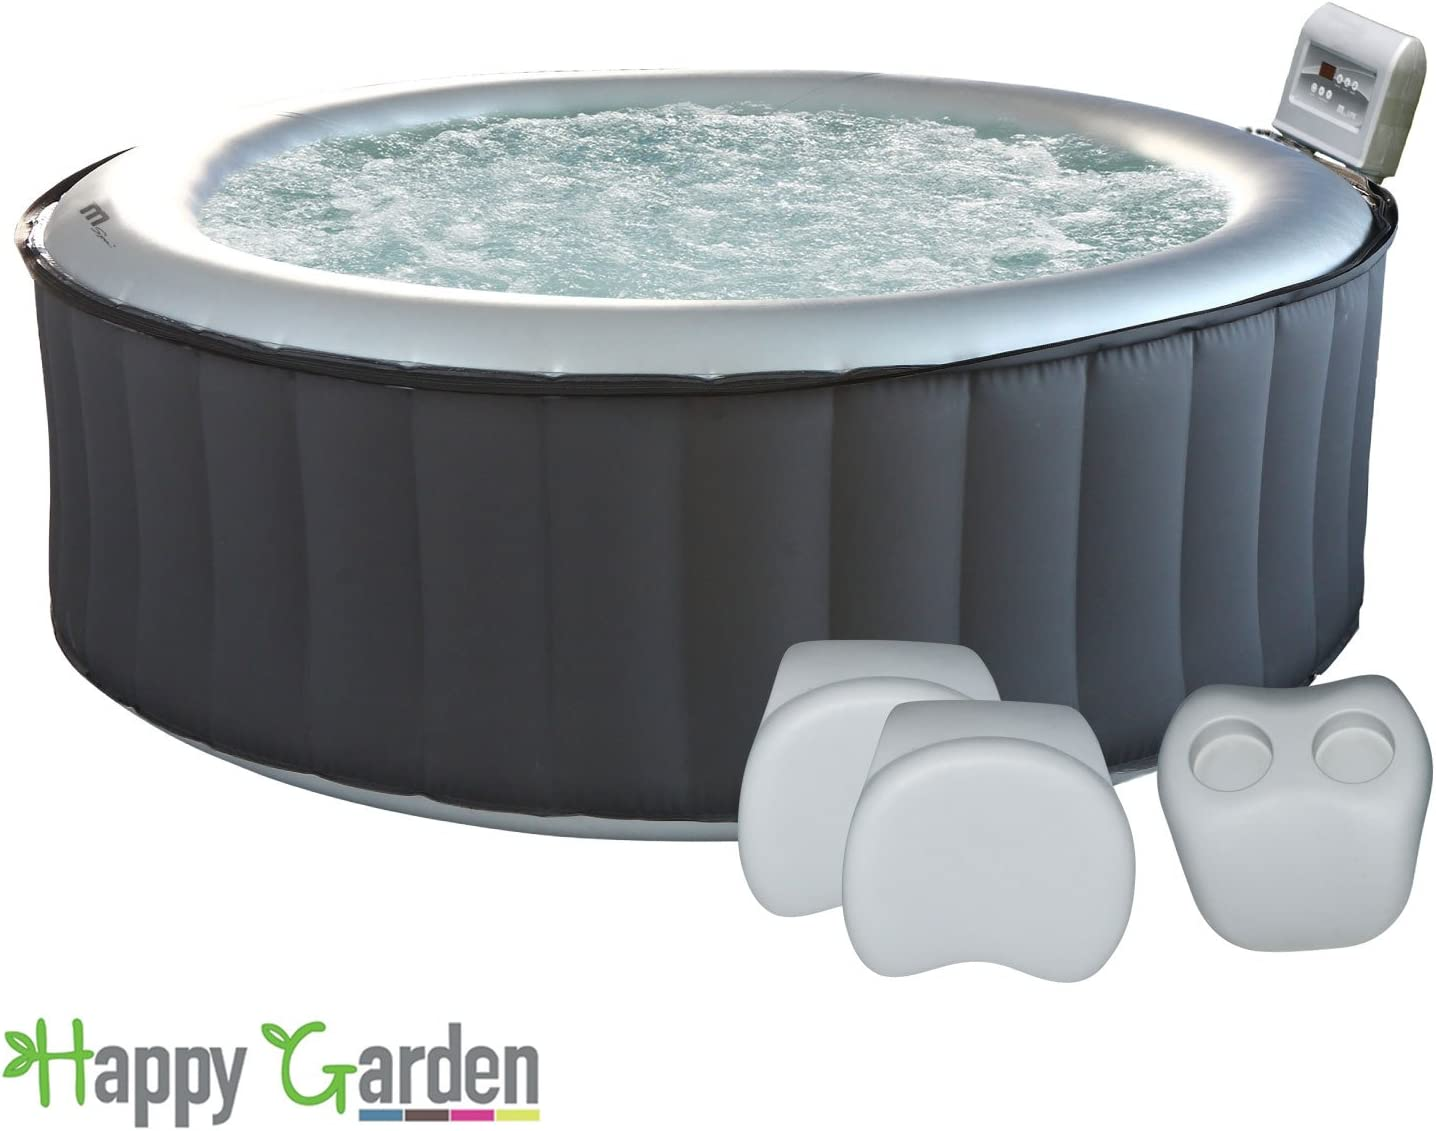 Happy Garden Pack Spa Gonflable Rond Silver Cloud - 4 Places + 2 appuie-tête + 1 Porte-gobelets